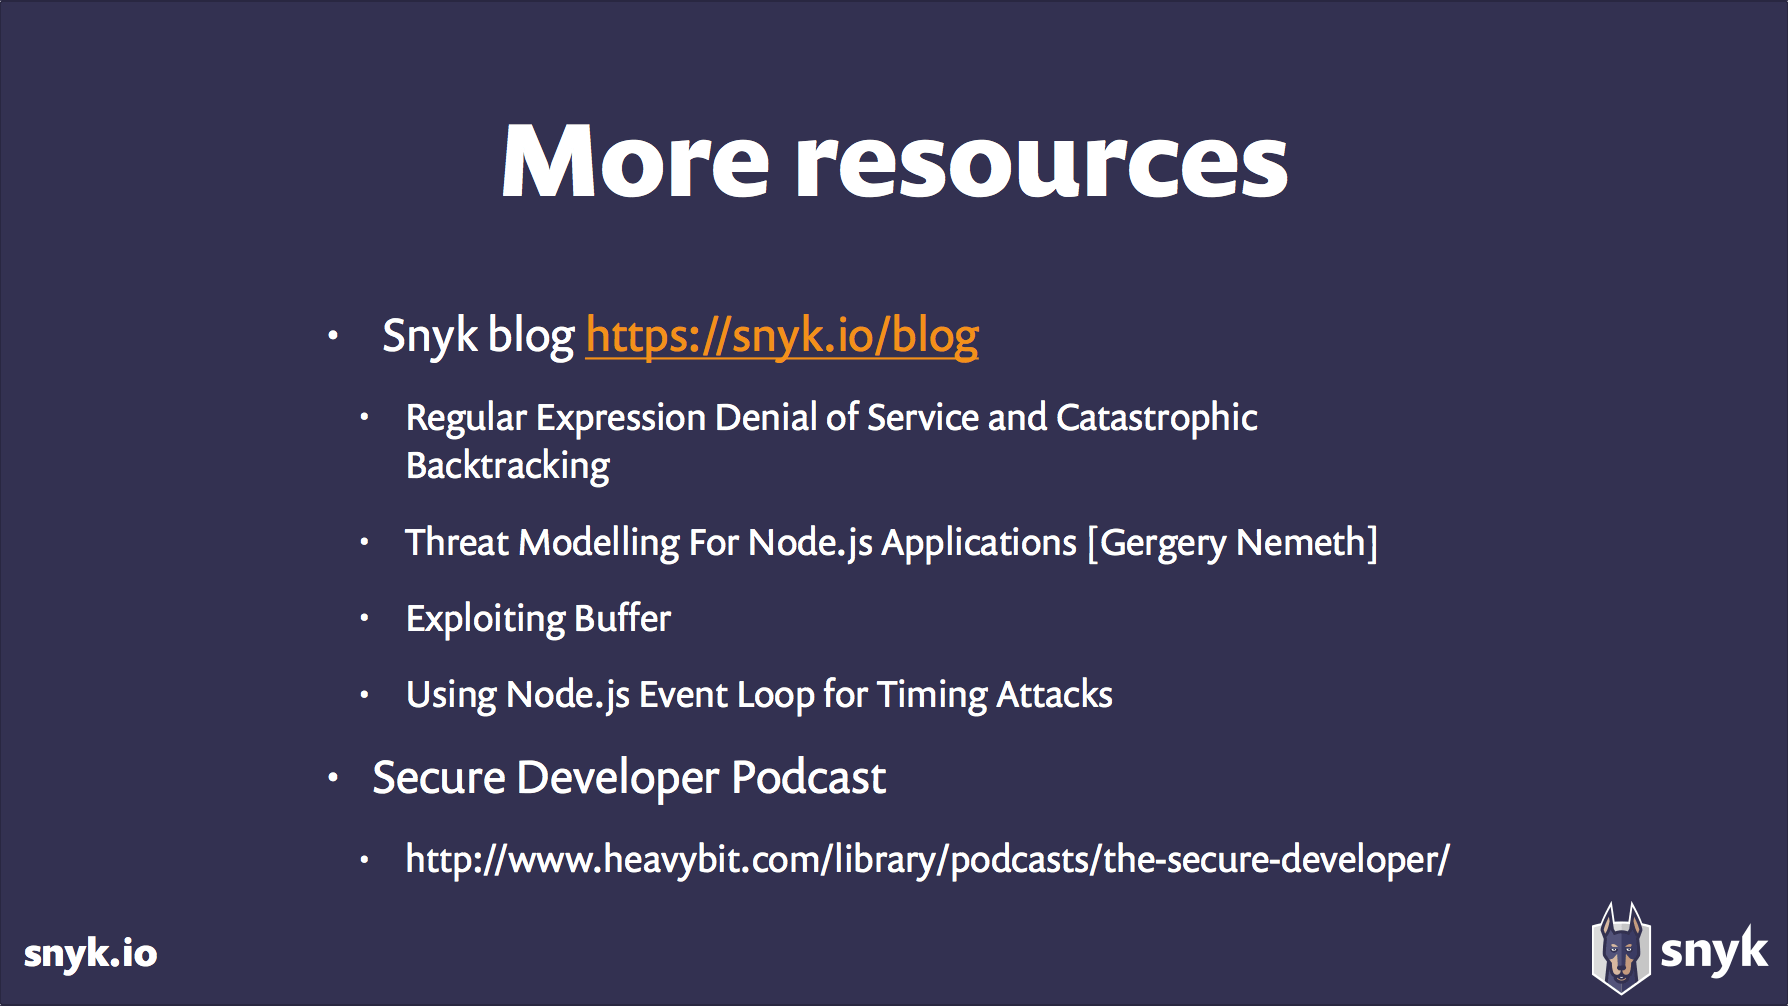 more resources from snyk